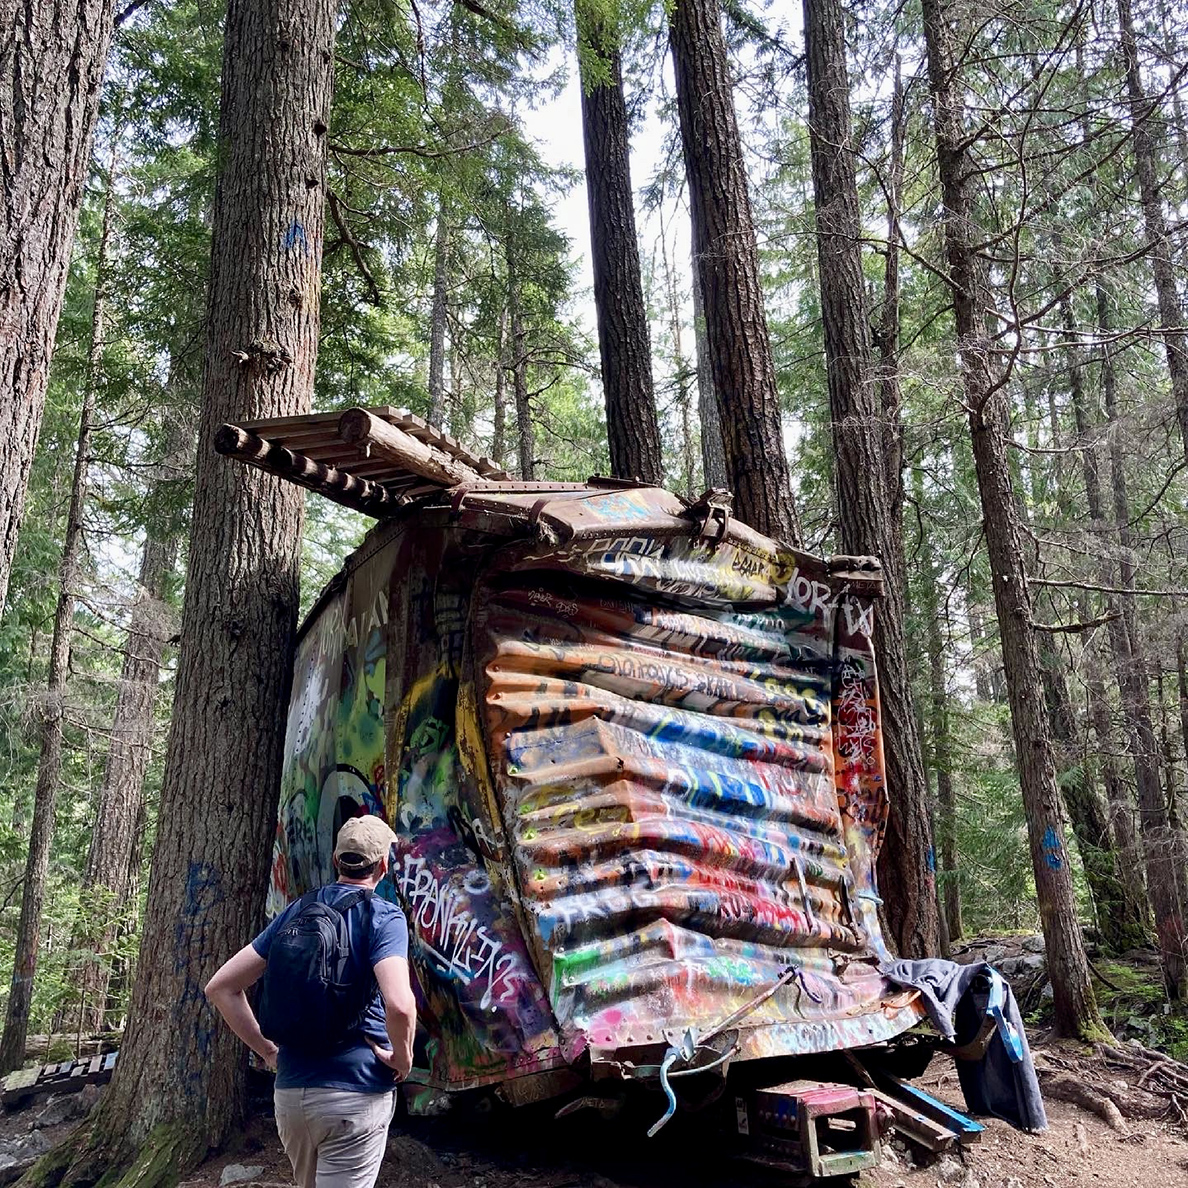 Train wreck is hiking destination in Whistler